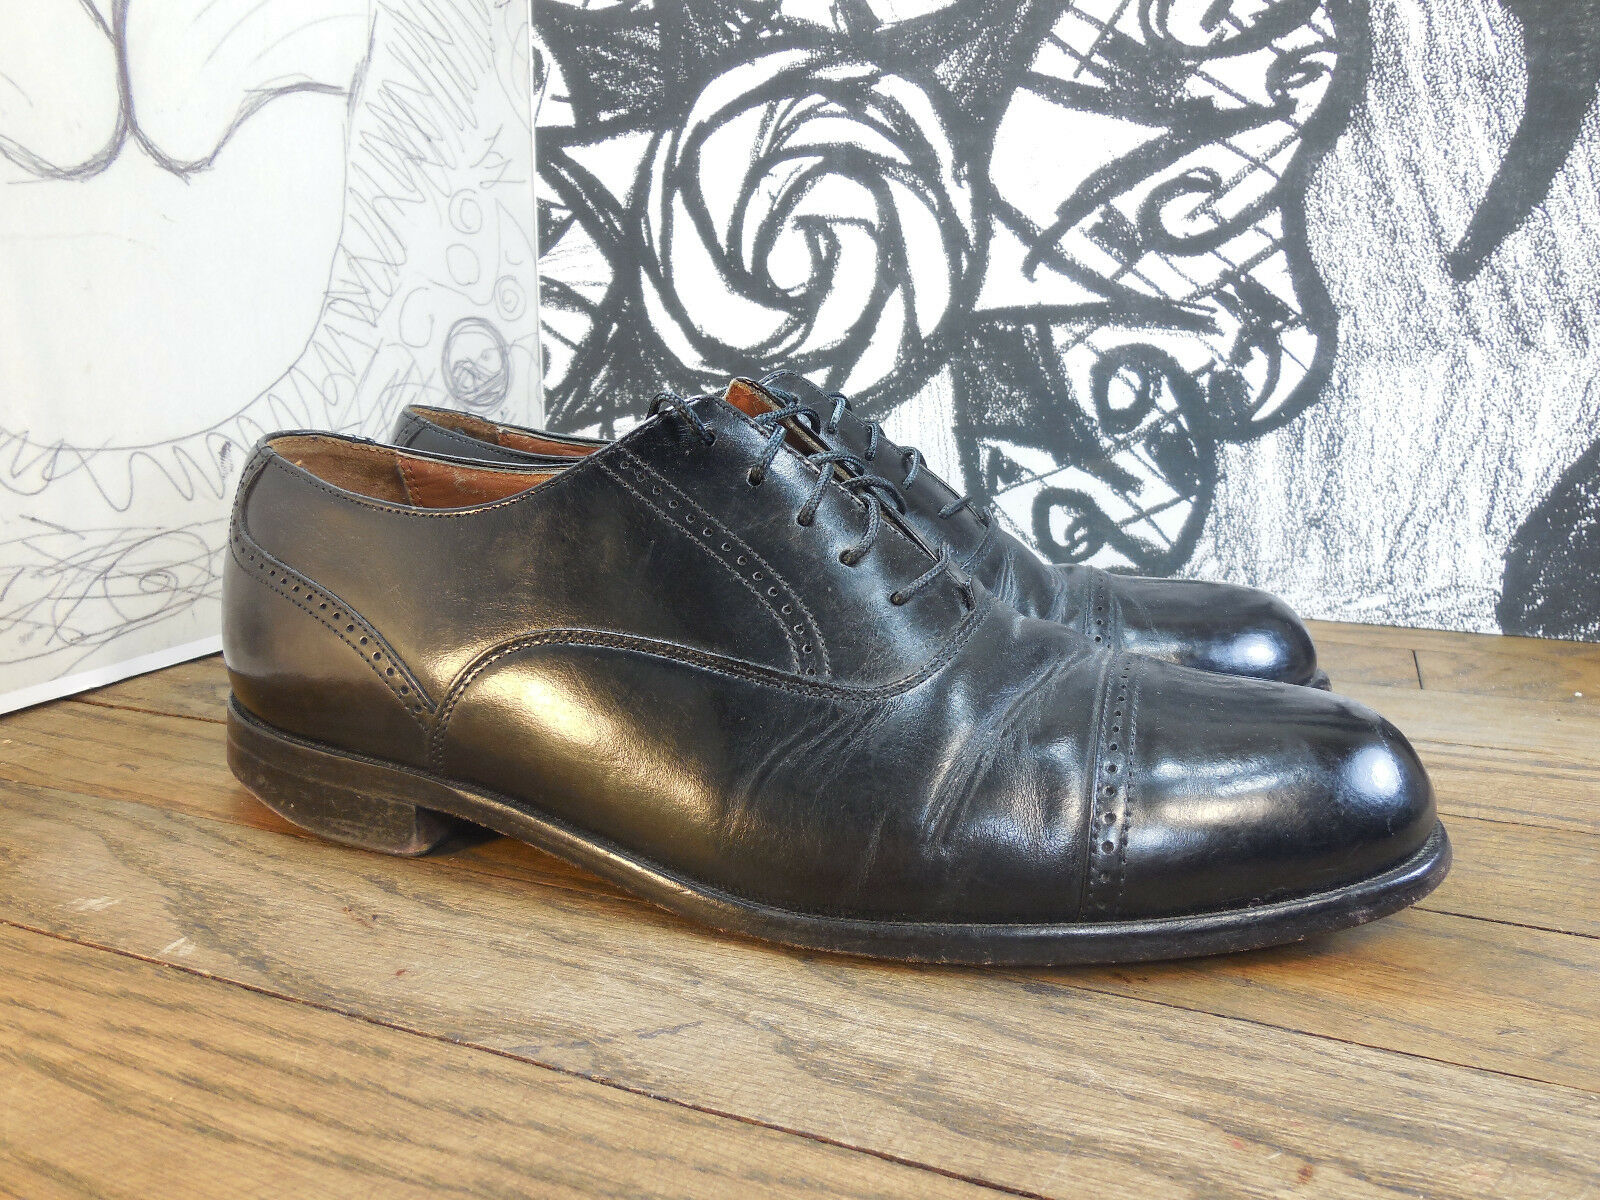 Bostonian Black Men's Leather Cap Toe Oxfords Men's Black 9M 43f82a